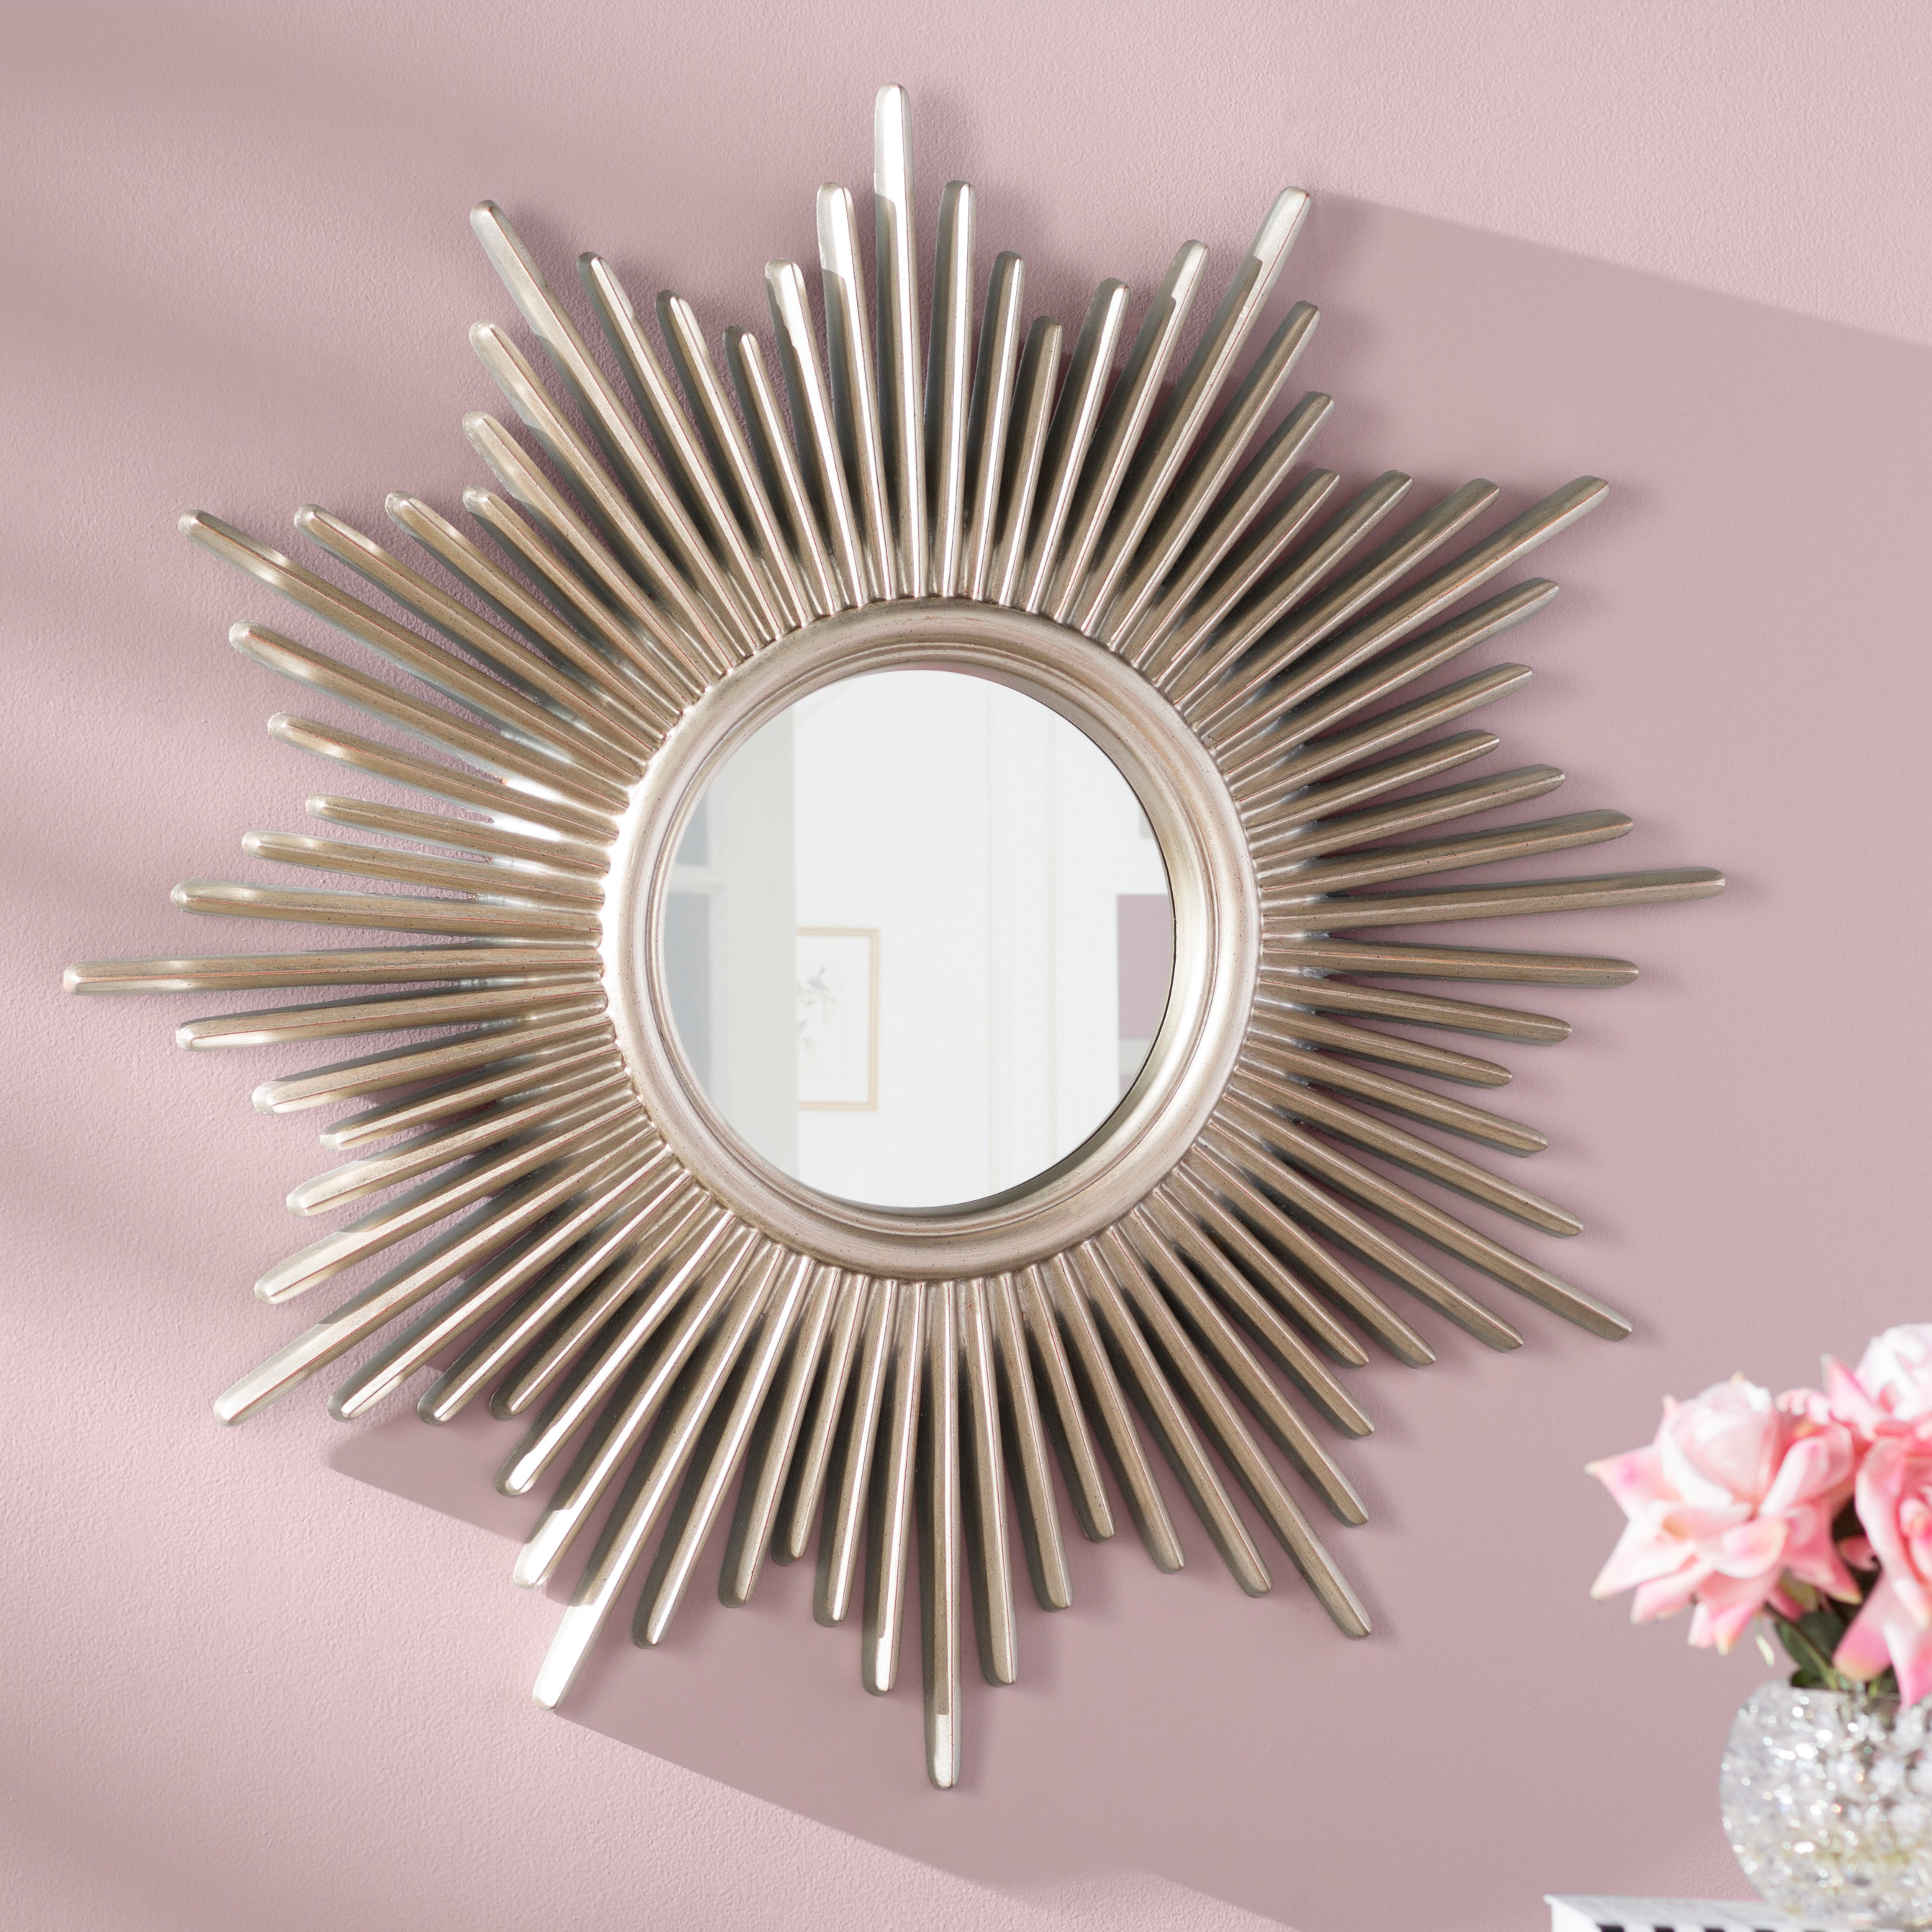 Josephson Starburst Glam Beveled Accent Wall Mirror With Regard To Karn Vertical Round Resin Wall Mirrors (View 15 of 20)